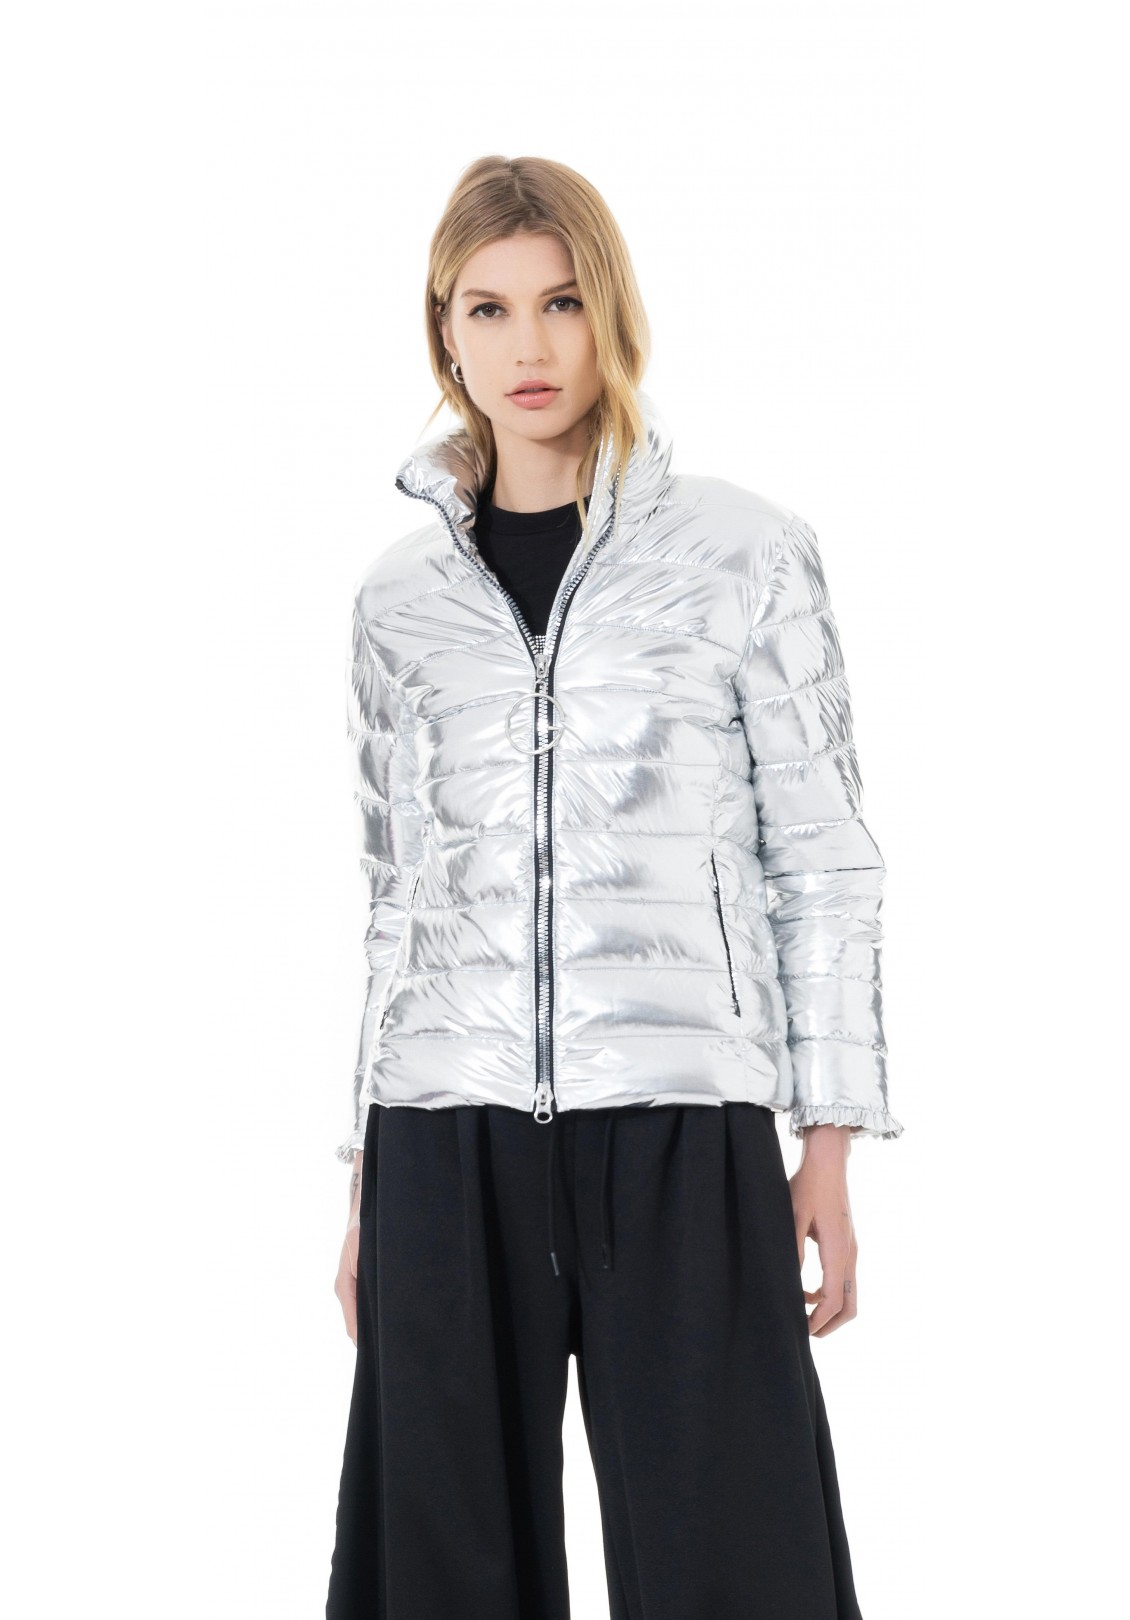 DOWN JACKET - GBD5117B - GAELLE PARIS